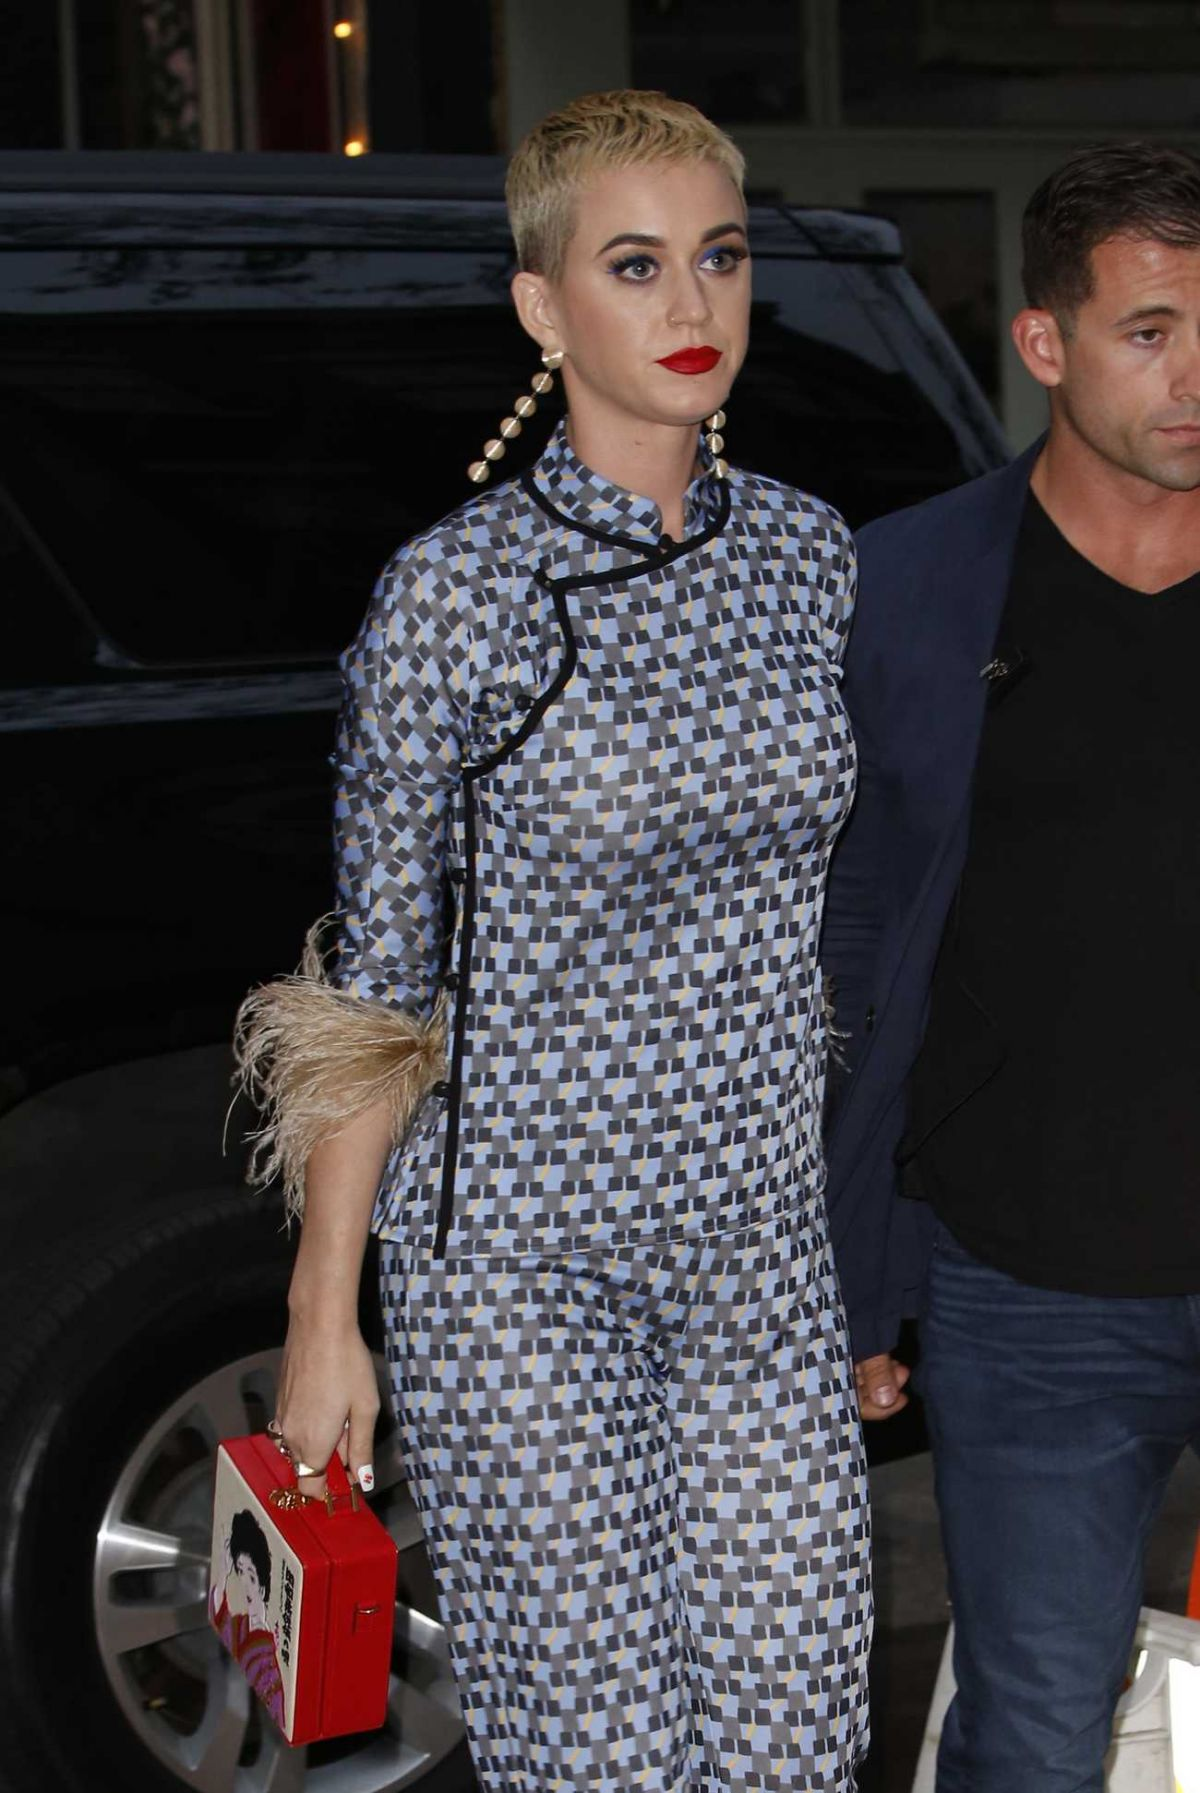 KATY PERRY at Pre-met Gala Dinner Hosted by Anna Wintour in New York 04/30/2017